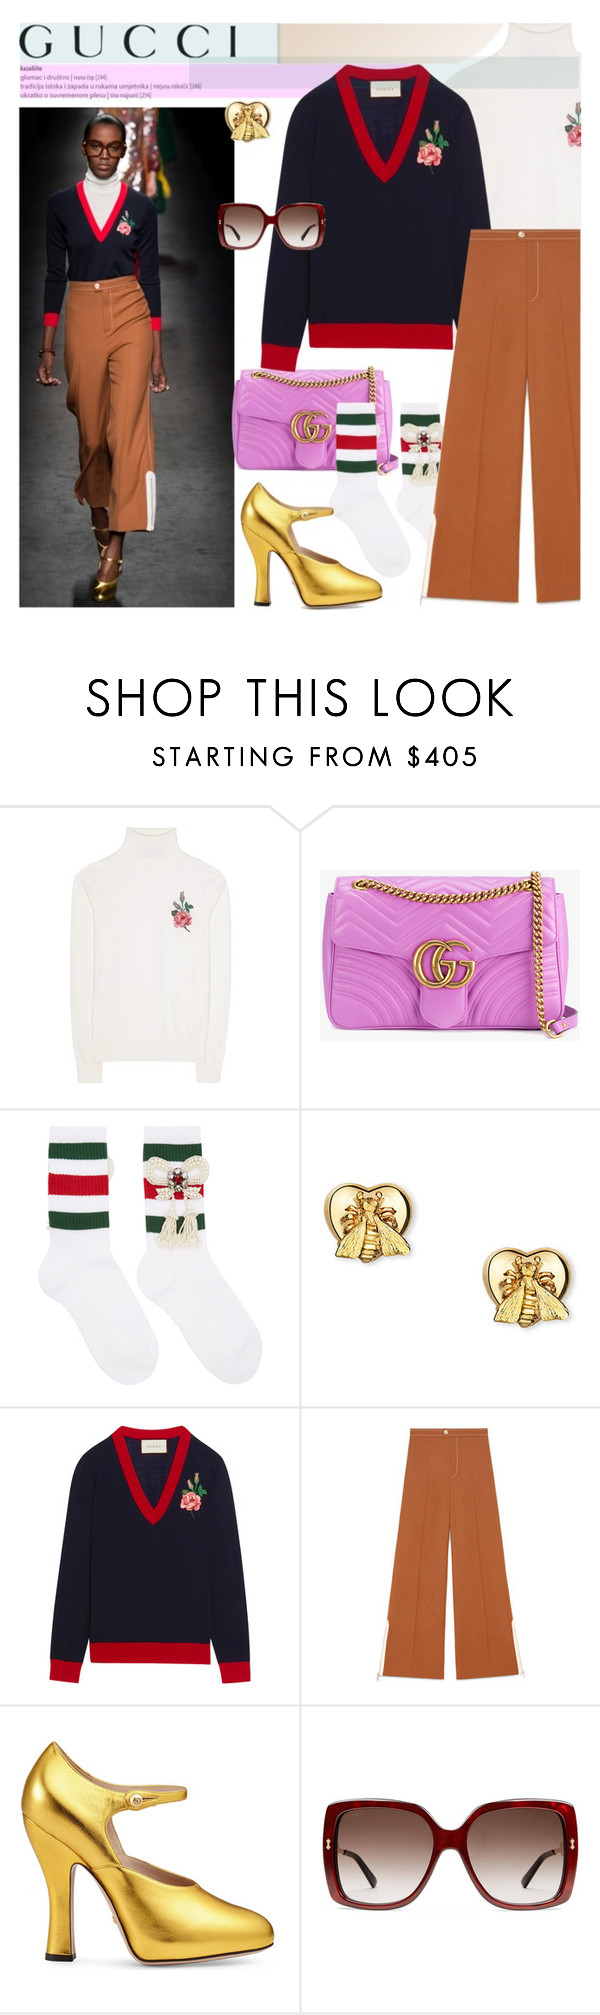 """BA 169: Gucci"" by bugatti-veyron ❤ liked on Polyvore featuring Gucci"